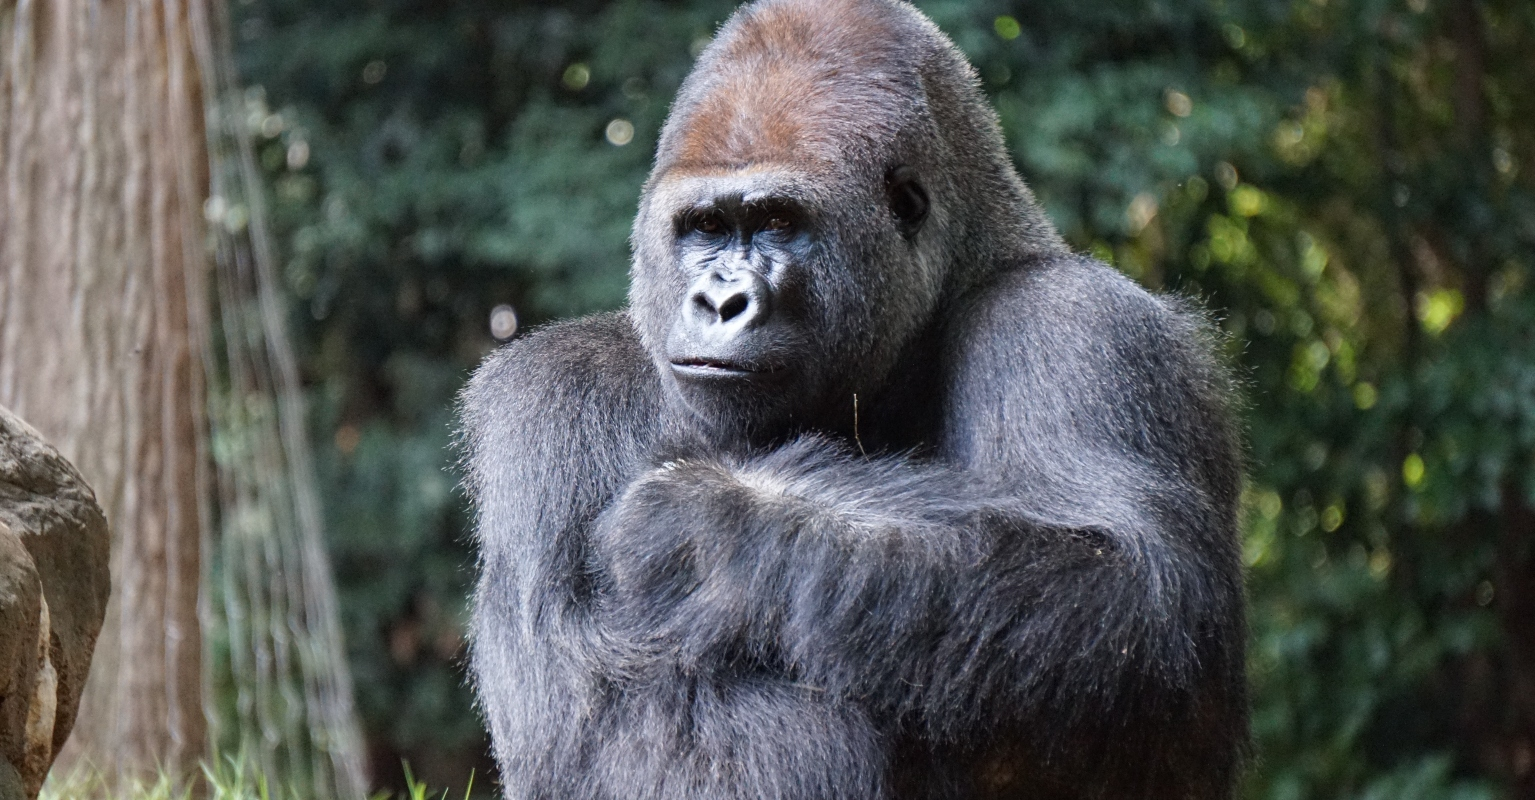 Gorilla tries to help injured bird after it fell in its enclosure